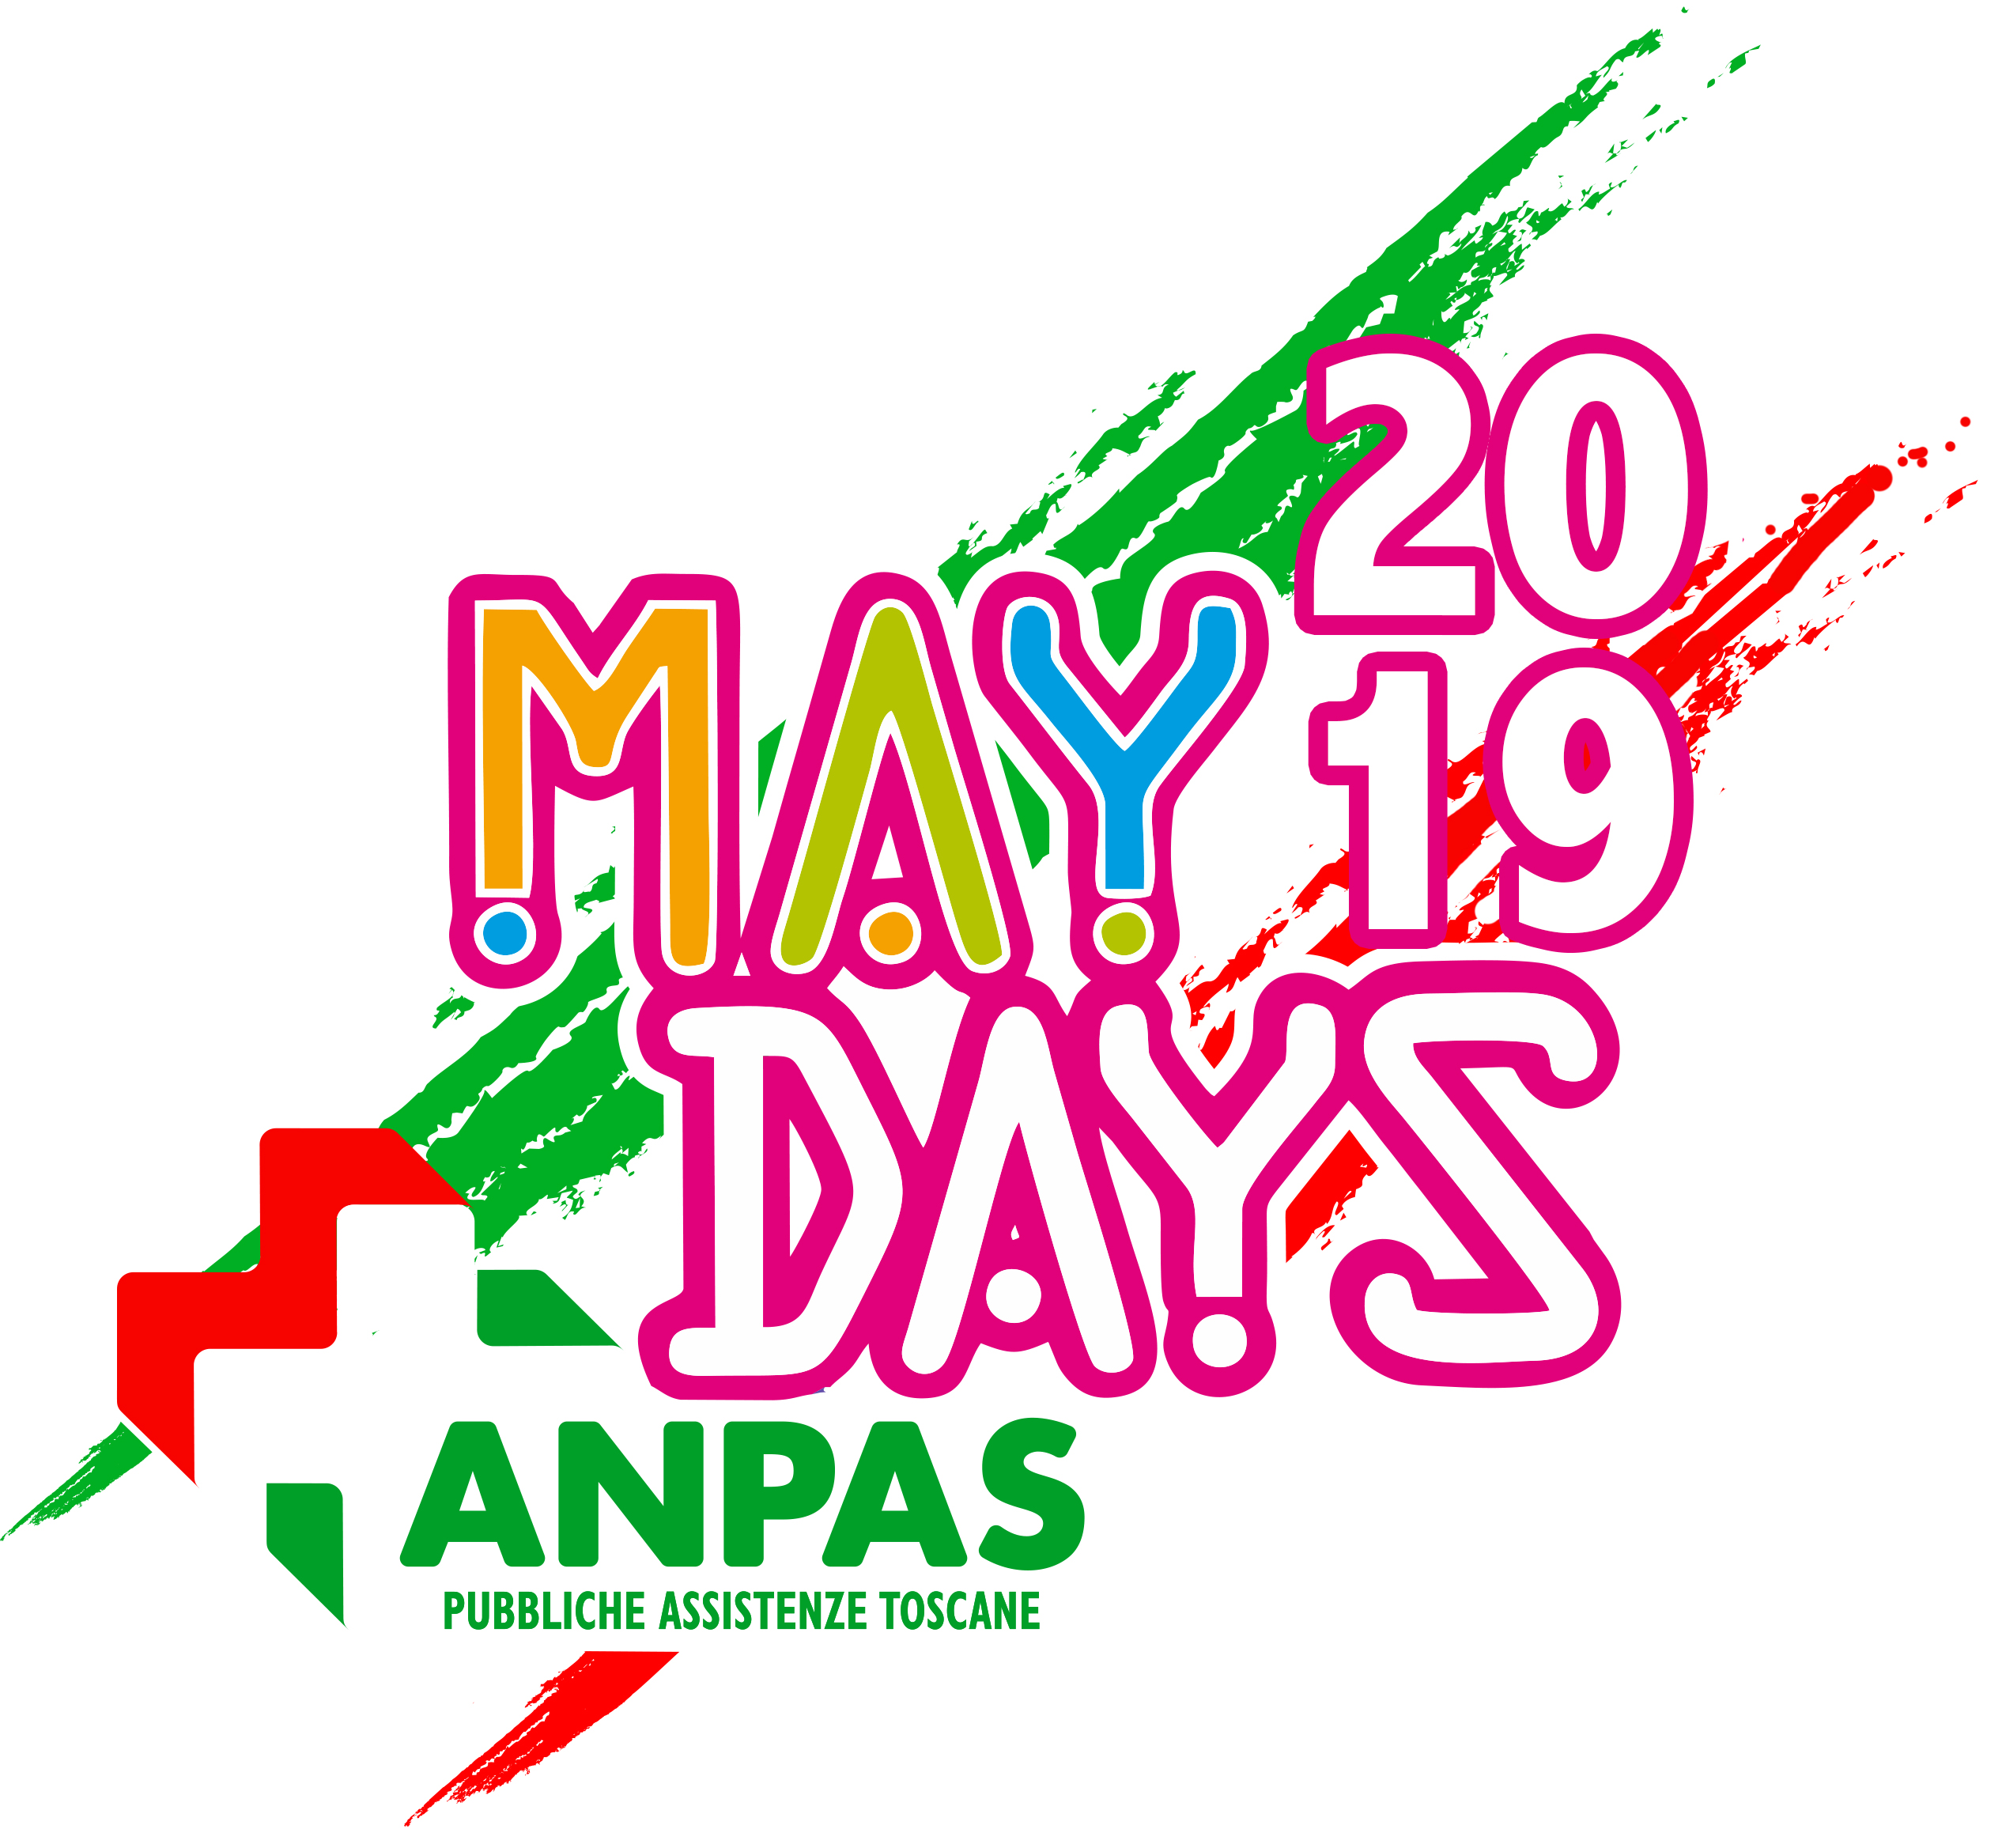 May Days 2019 - Prato, 17-19 Maggio 2019